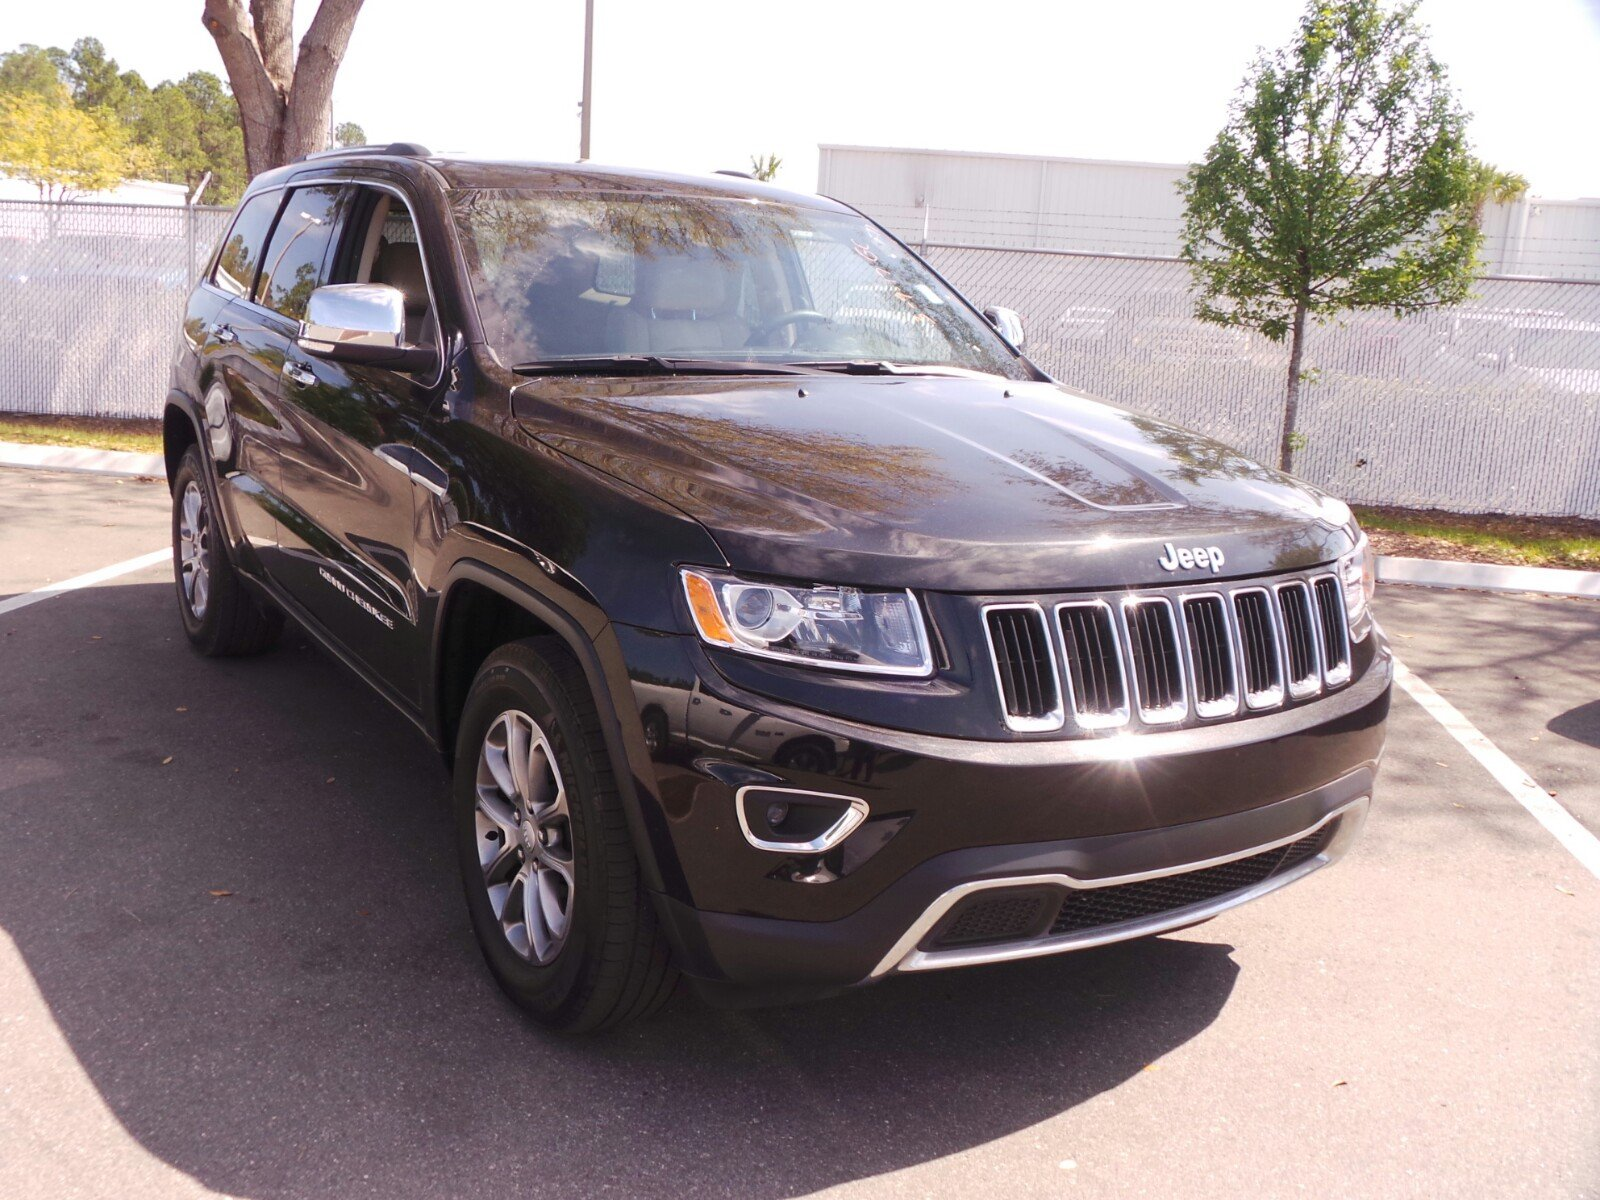 pre owned 2014 jeep grand cherokee limited sport utility in jacksonville p8832 arlington toyota. Black Bedroom Furniture Sets. Home Design Ideas